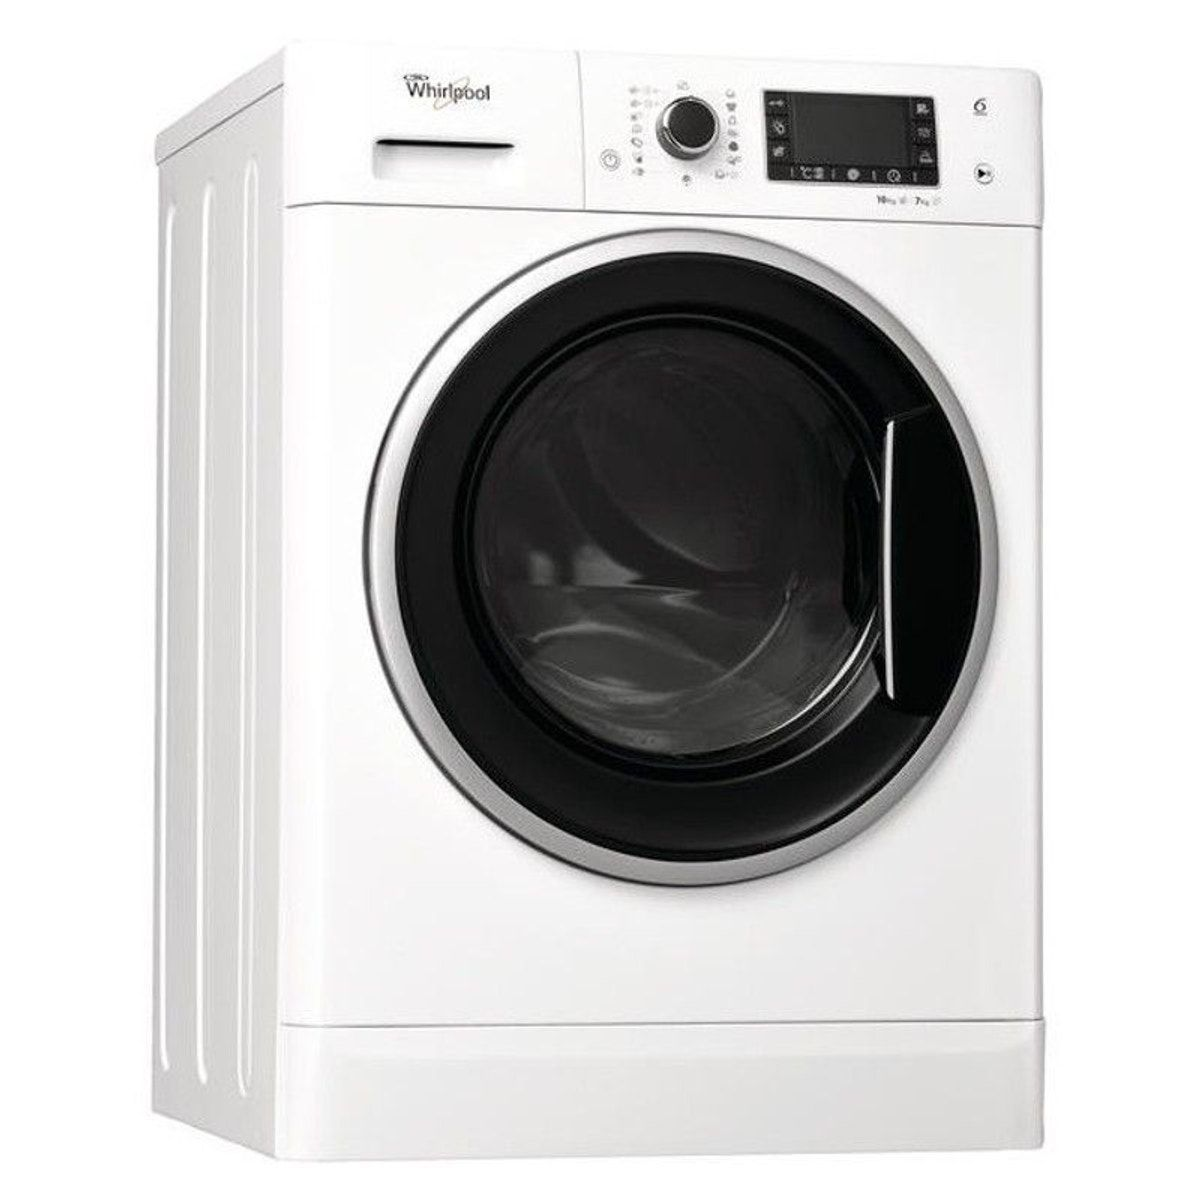 Lave Linge Whirlpool Wwdp 10716 Taille Taille Unique Lave Linge Lave Linge Sechant Et Lave